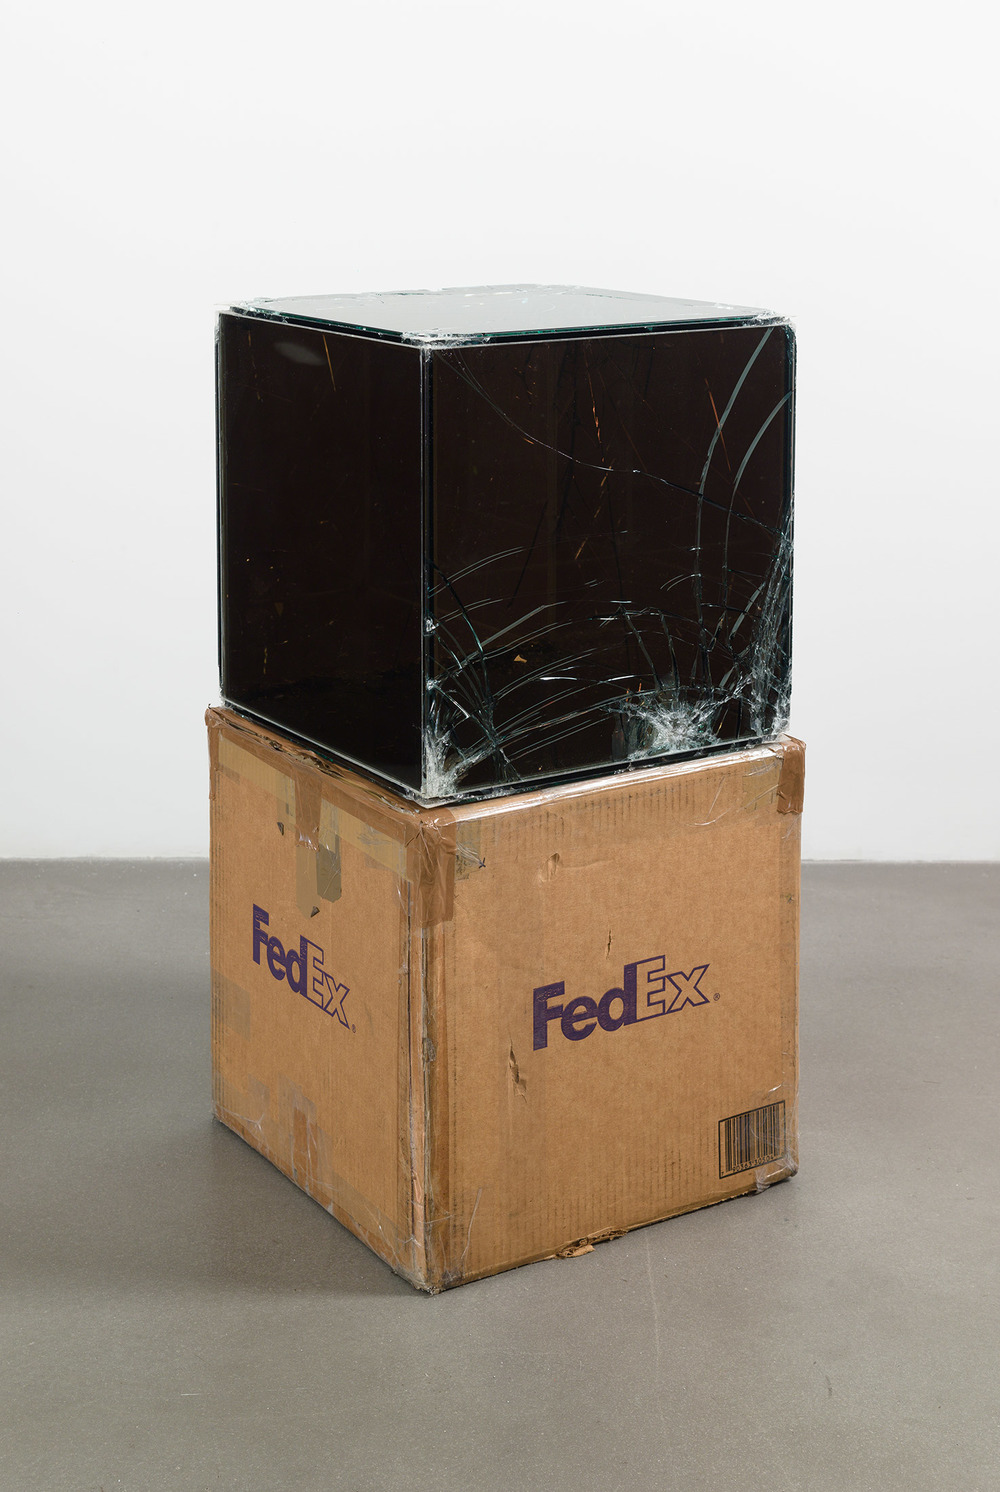 FedEx® Kraft Box  © 2005 FEDEX 330504 10/05 SSCC, Priority Overnight, Los Angeles–Miami trk#865344981358, October 29–30, 2008, Priority Overnight, Miami–Ann Arbor trk#861049125126, March 3–4, 2009, Standard Overnight, Ann Arbor–Los Angeles trk#868274625760, July 9–10, 2009, Standard Overnight, Los Angeles–New York trk#774901687401, November 4–5, 2015, Standard Overnight, New York–Los Angeles trk#775241470240, December 21–22, 2015    2008–   Laminated Mirropane, FedEx shipping box, accrued FedEx shipping and tracking labels, silicone, metal, tape  16 x 16 x 16 inches   Pulleys, Cogwheels, Mirrors, and Windows, 2009    Great Hall Exhibition, 2015